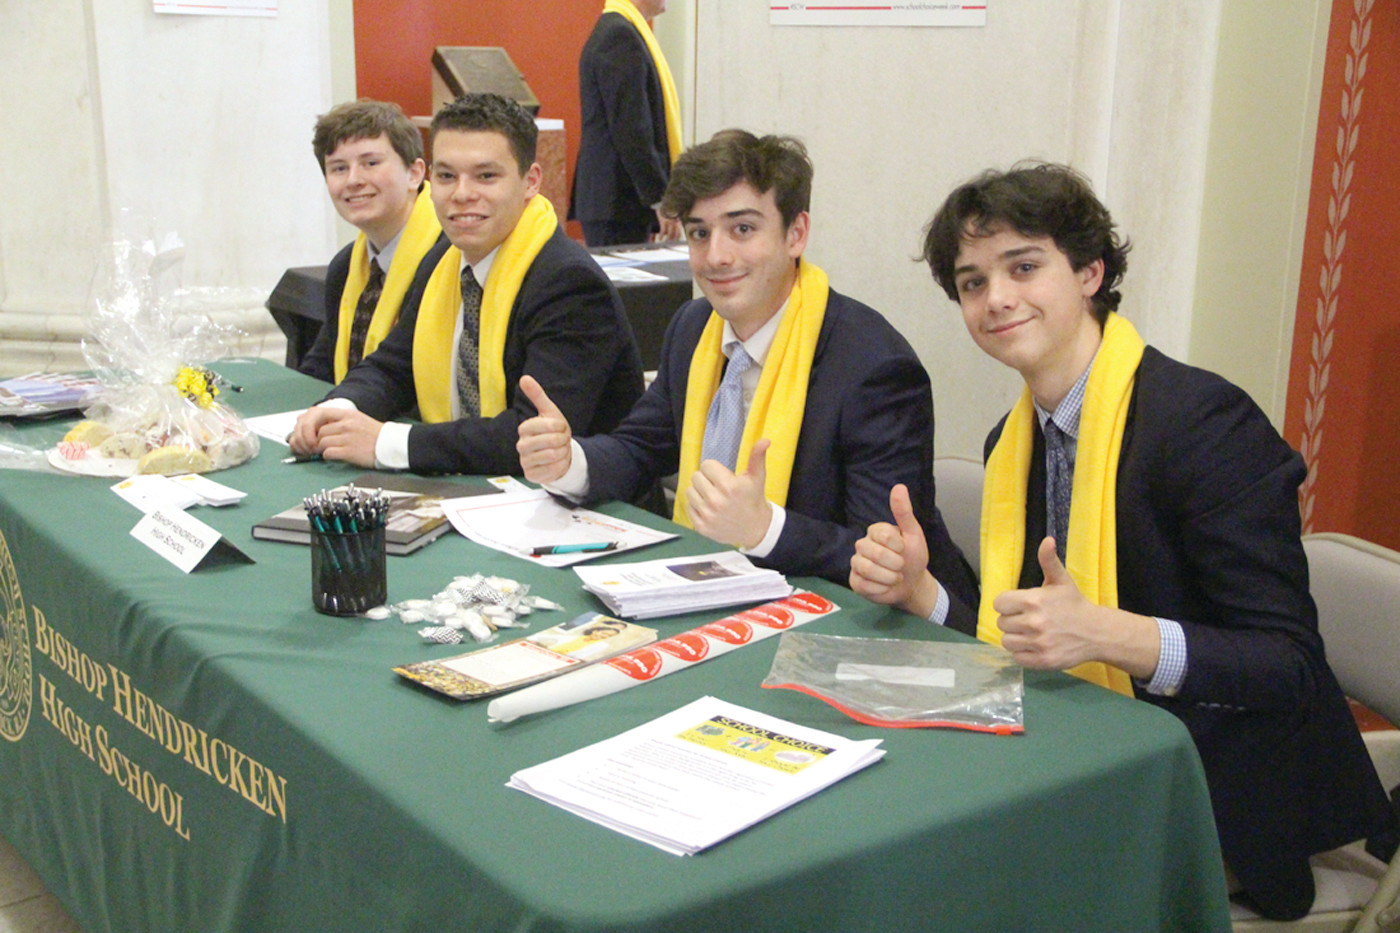 THUMBS UP FOR HENDRICKEN: Hendricken students Tyler Cwiek, Tyler McPhee and brothers Nick and Joseph Weiddinger were present to answer questions about the school.